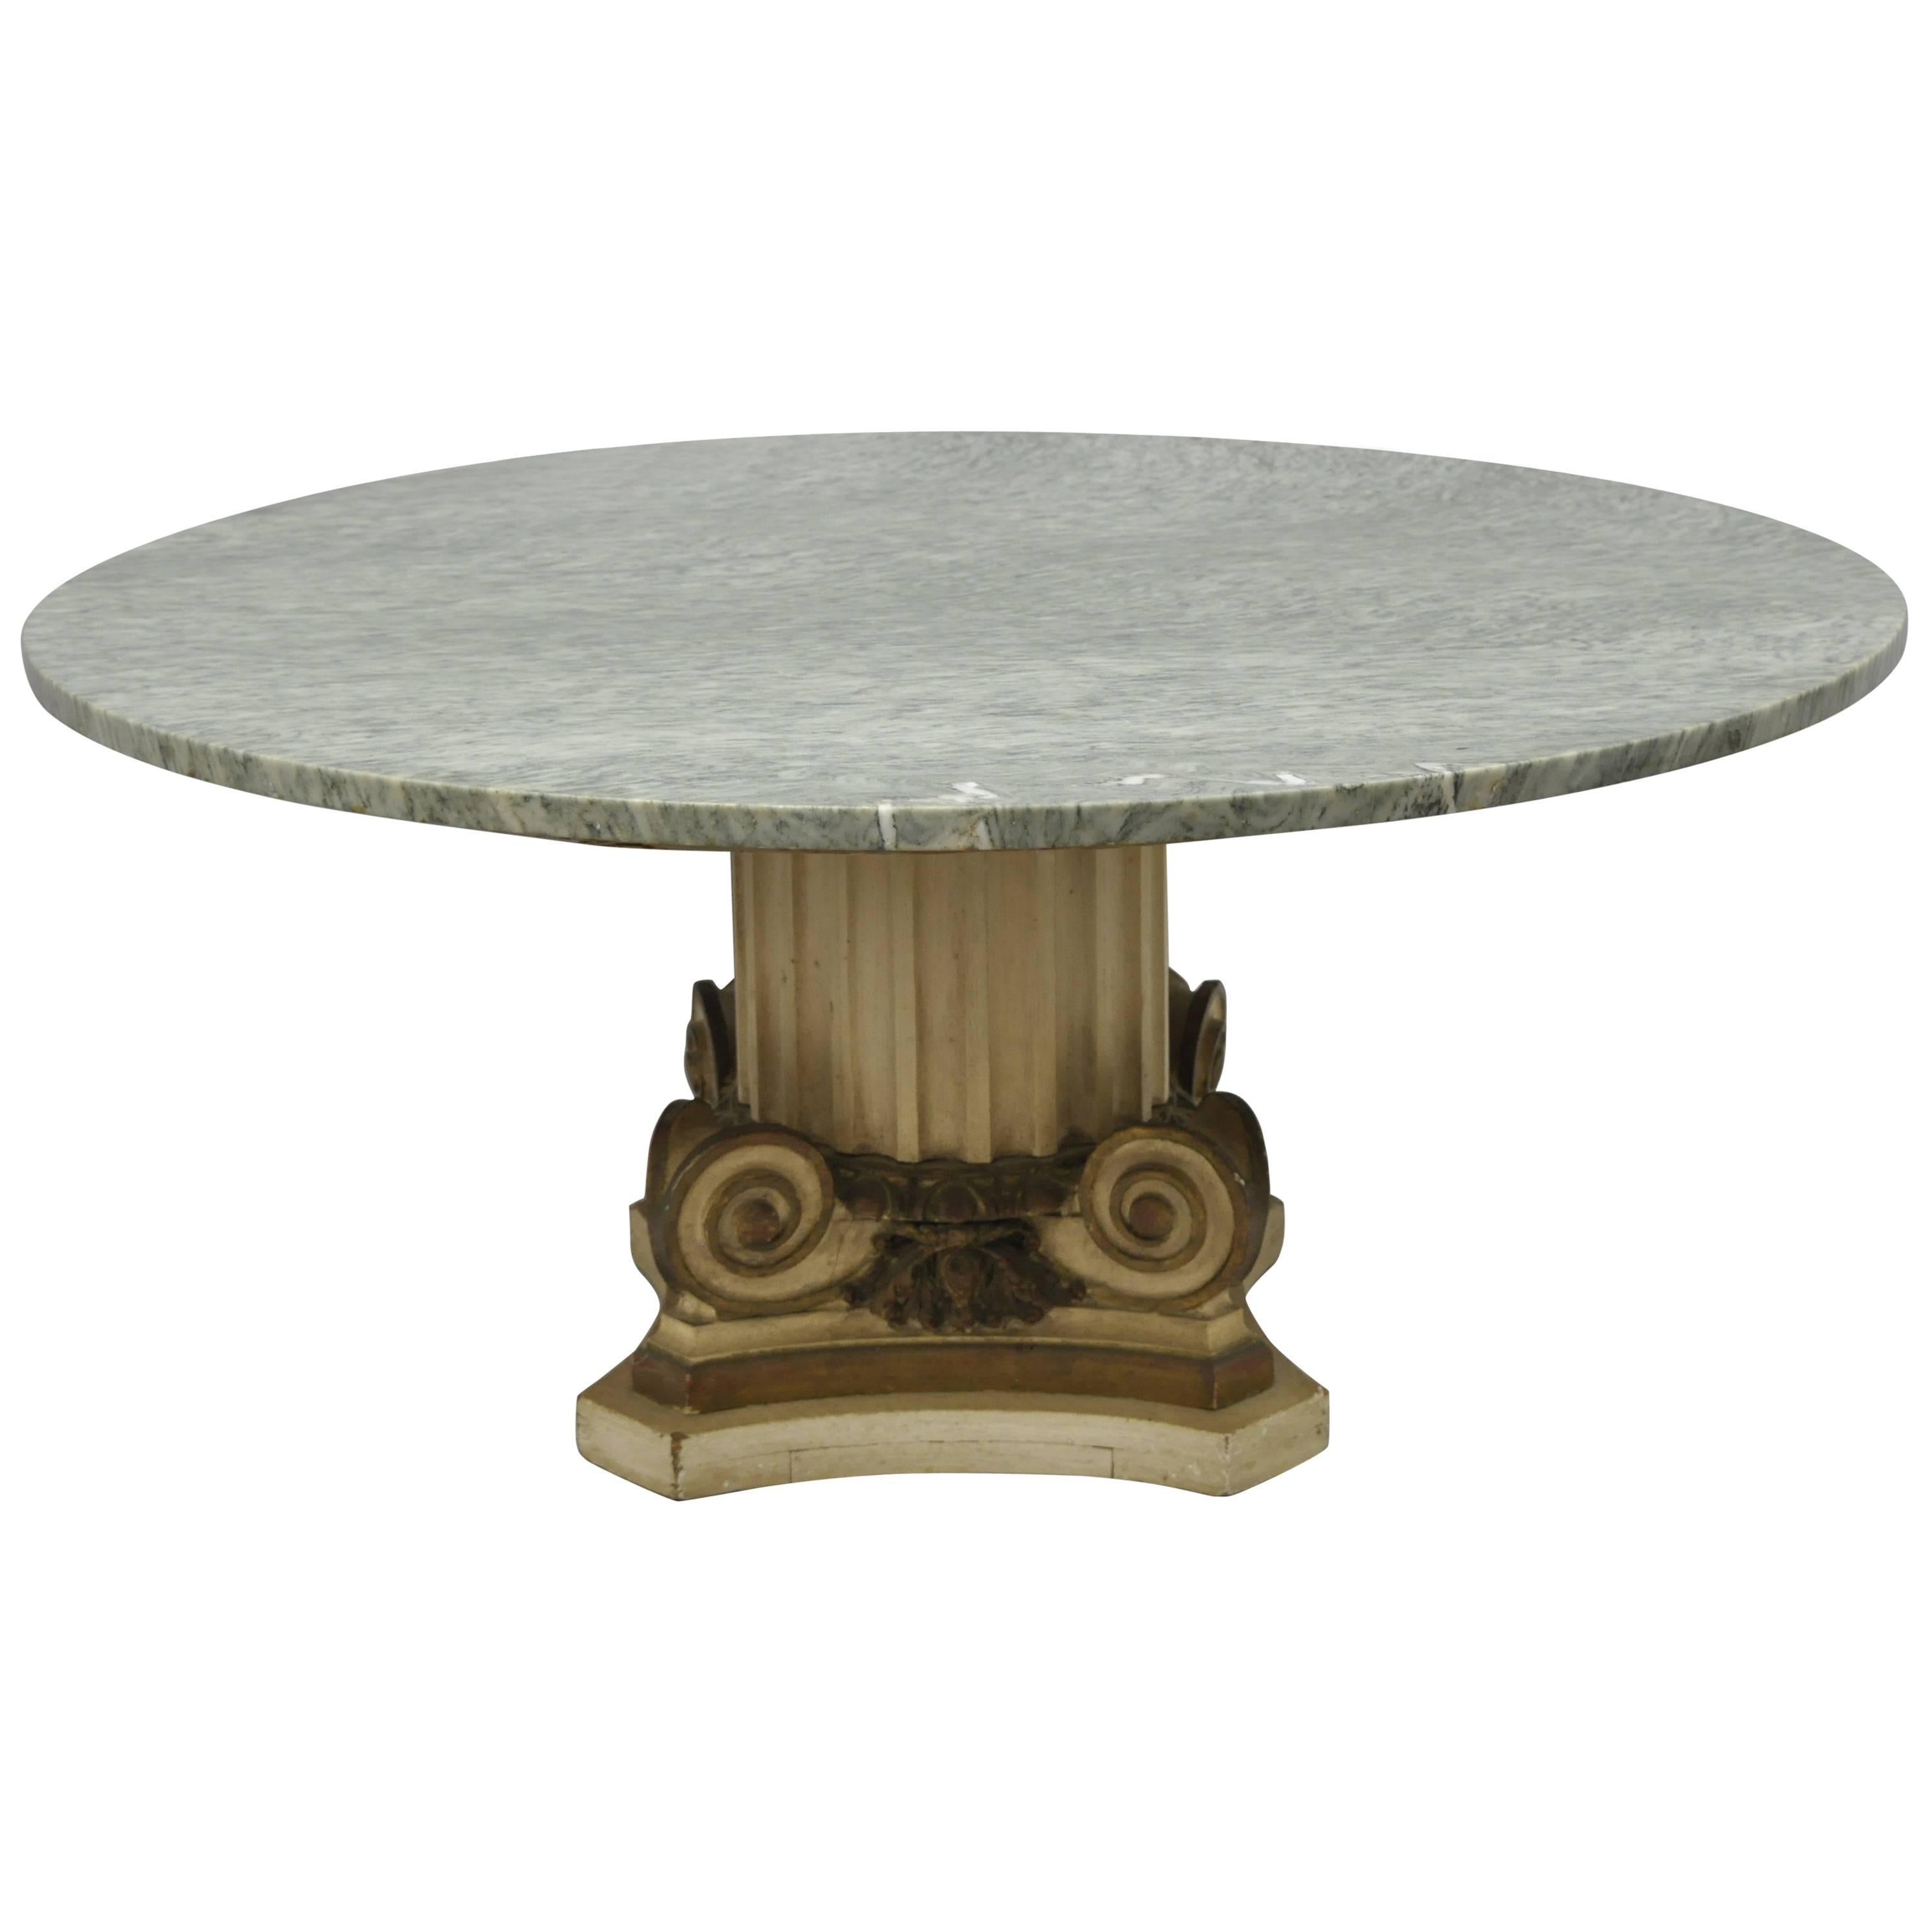 Green Marble Top Fluted Corinthian Column Carved Wood Round Coffee Table